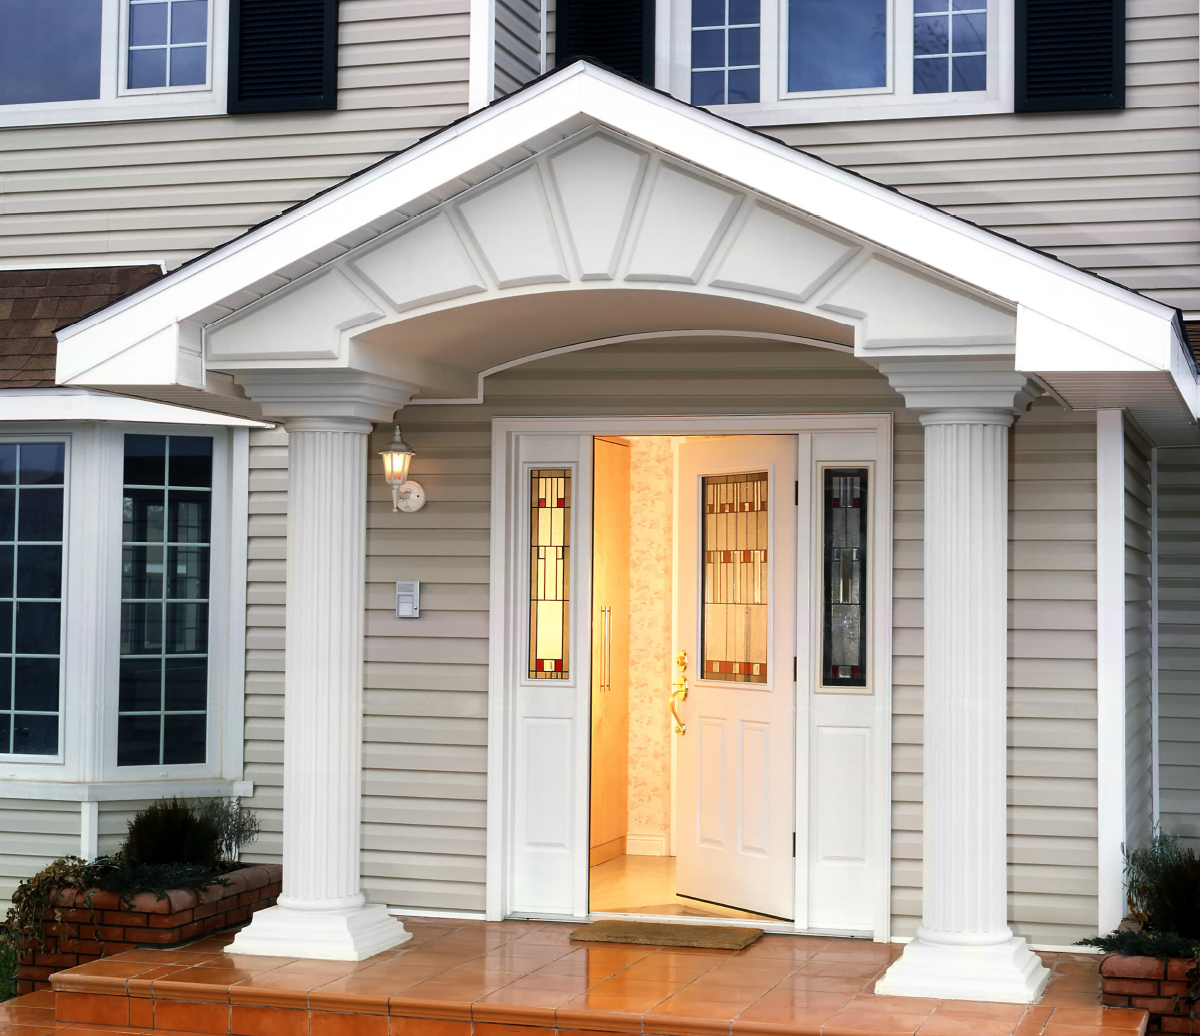 A Guide To Installing Residential Awnings In Your NJ Home